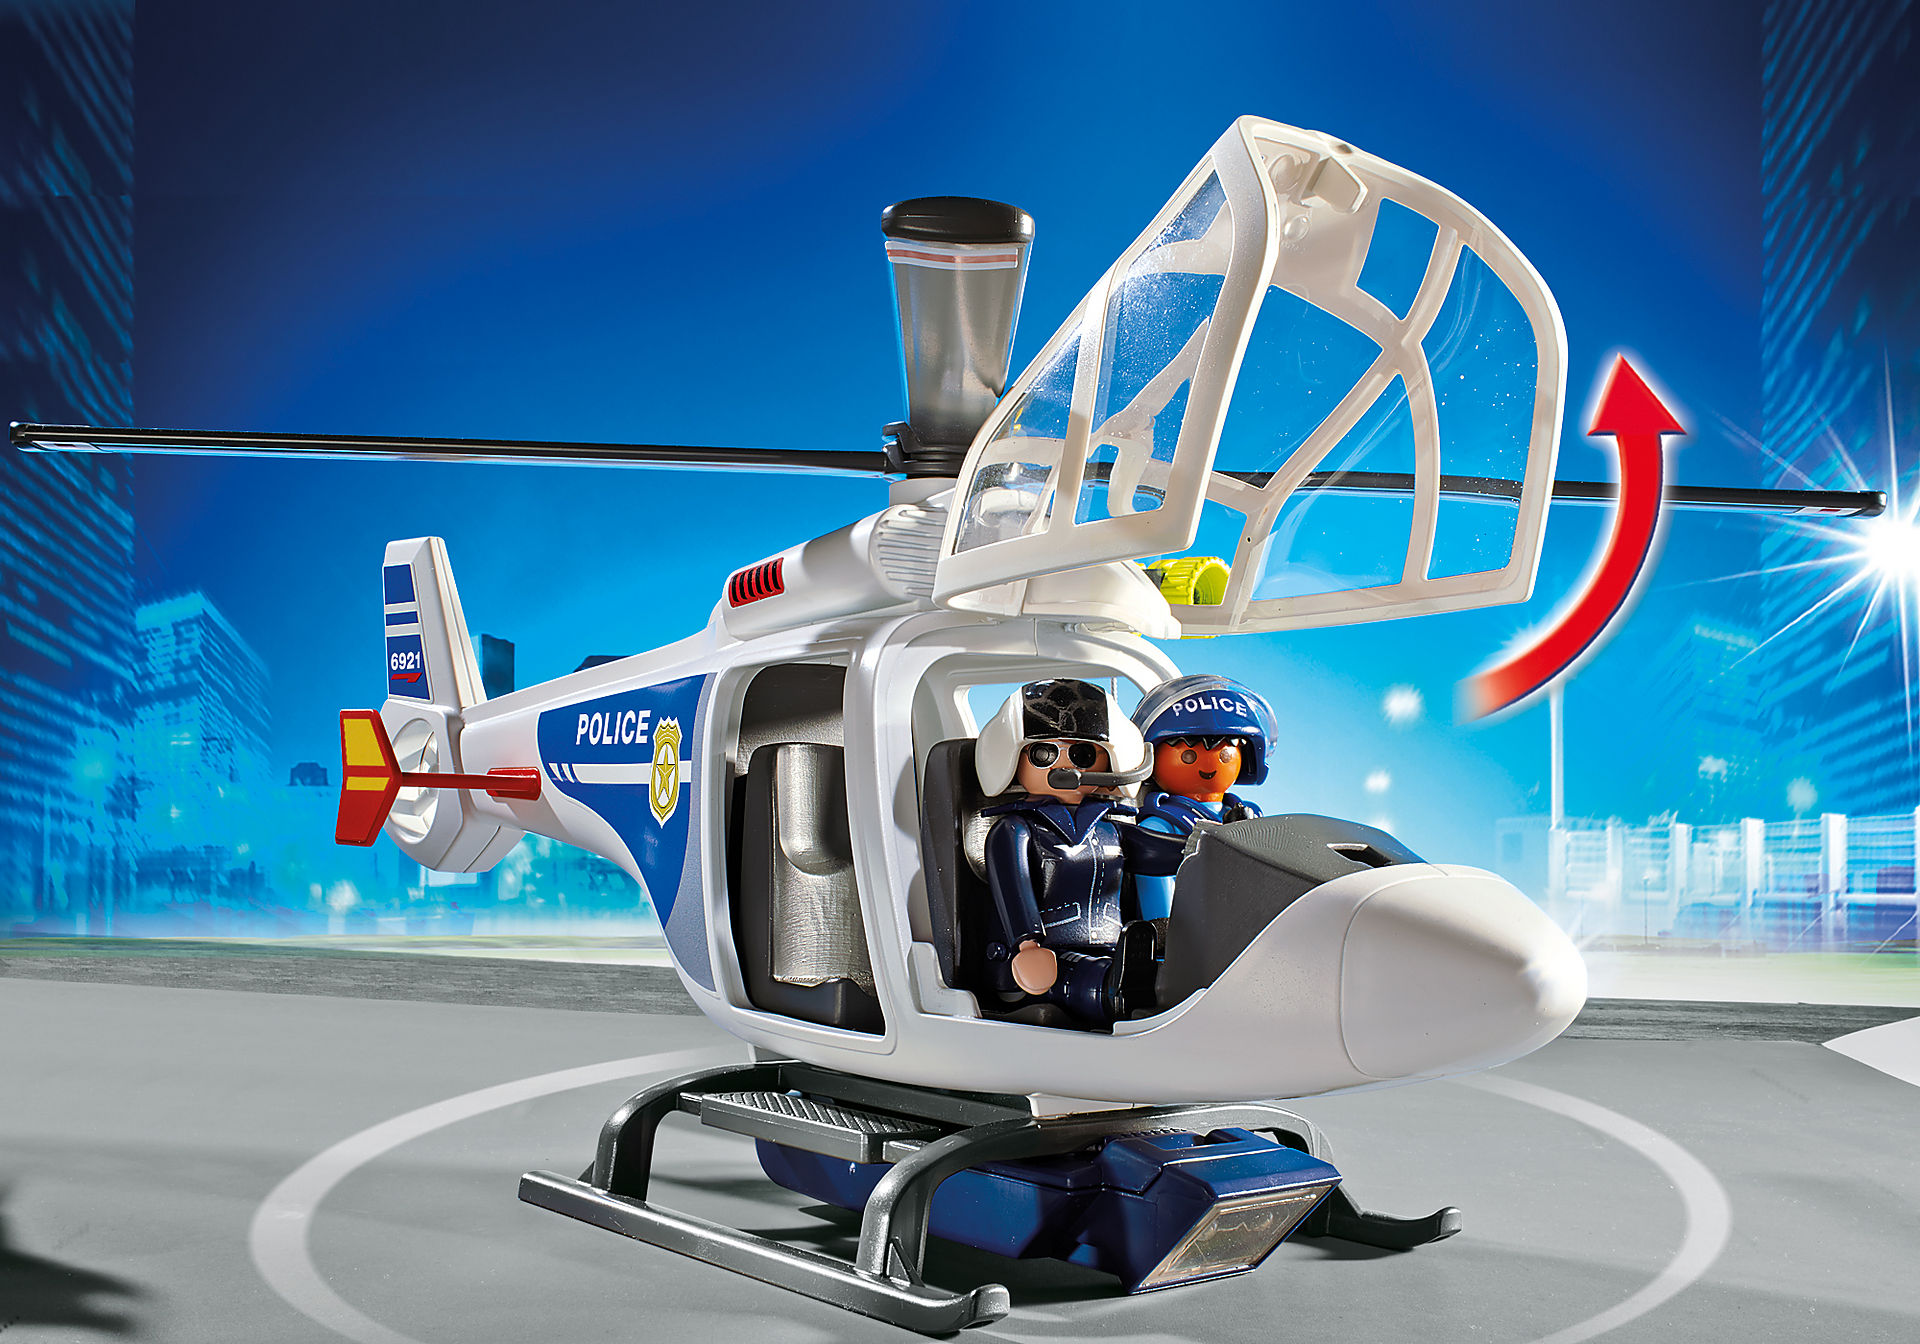 6921 Police Helicopter with LED Searchlight zoom image4